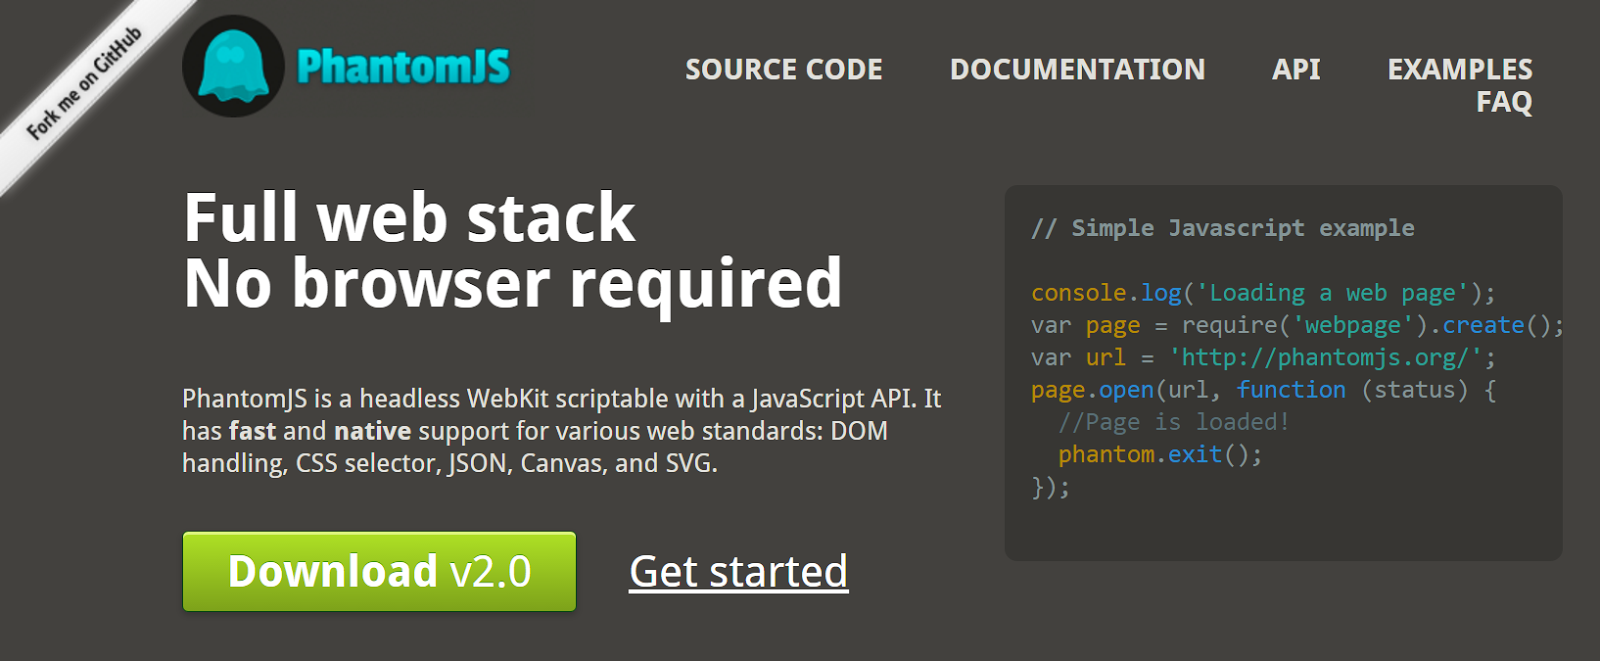 iLearnBlogger: Node js - Using PhantomJS as a headless browser